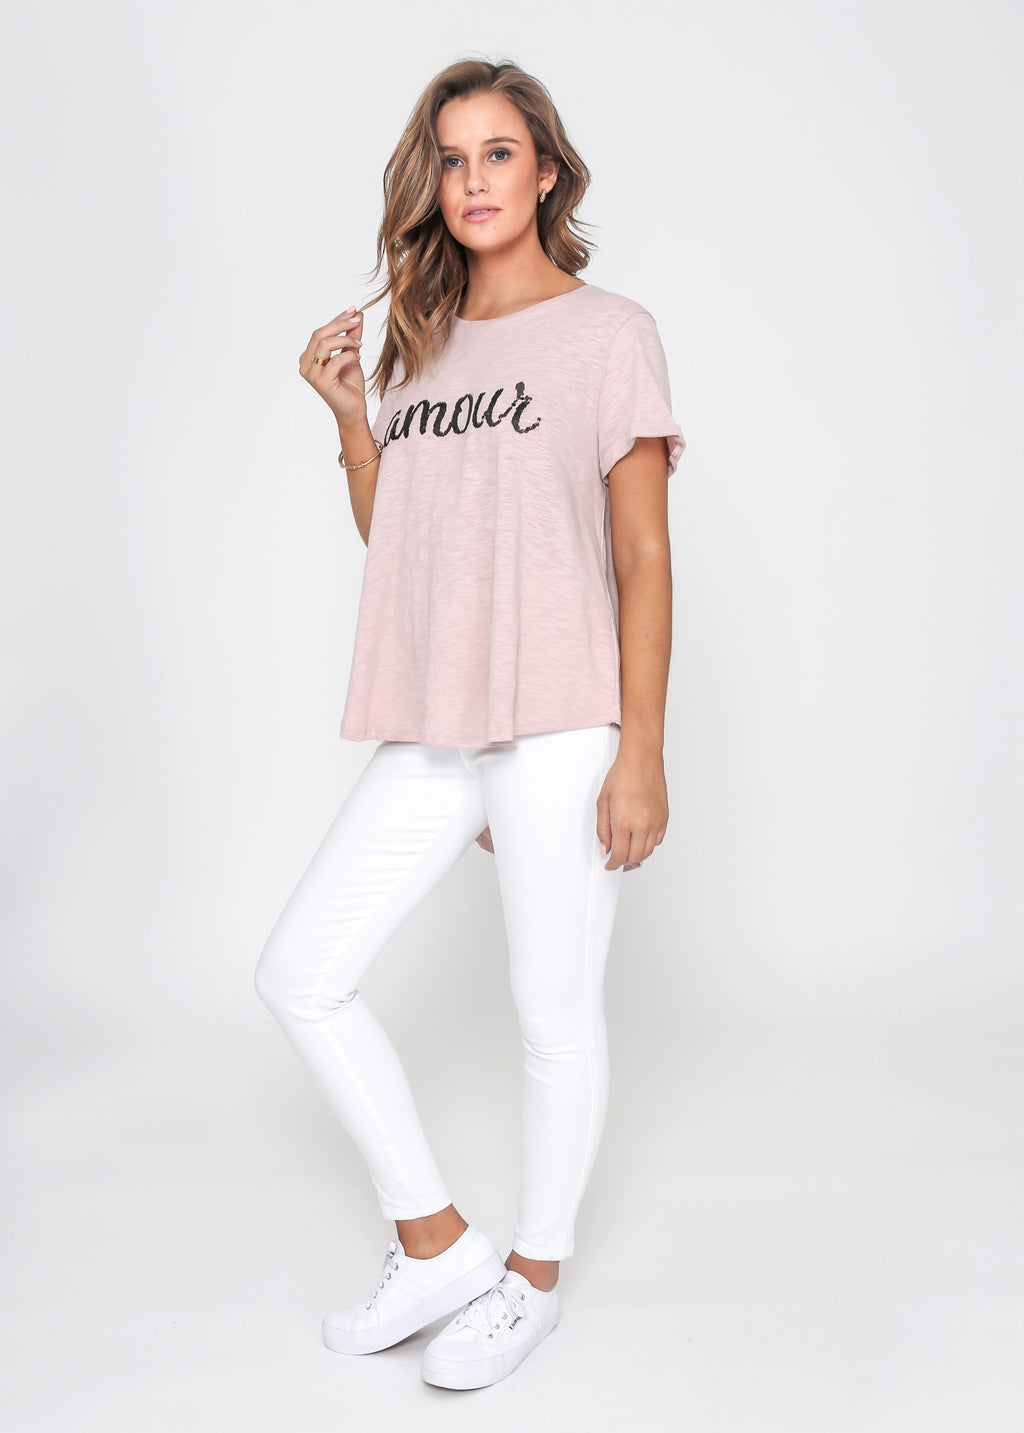 AMOUR SEQUIN TEE - BLUSH